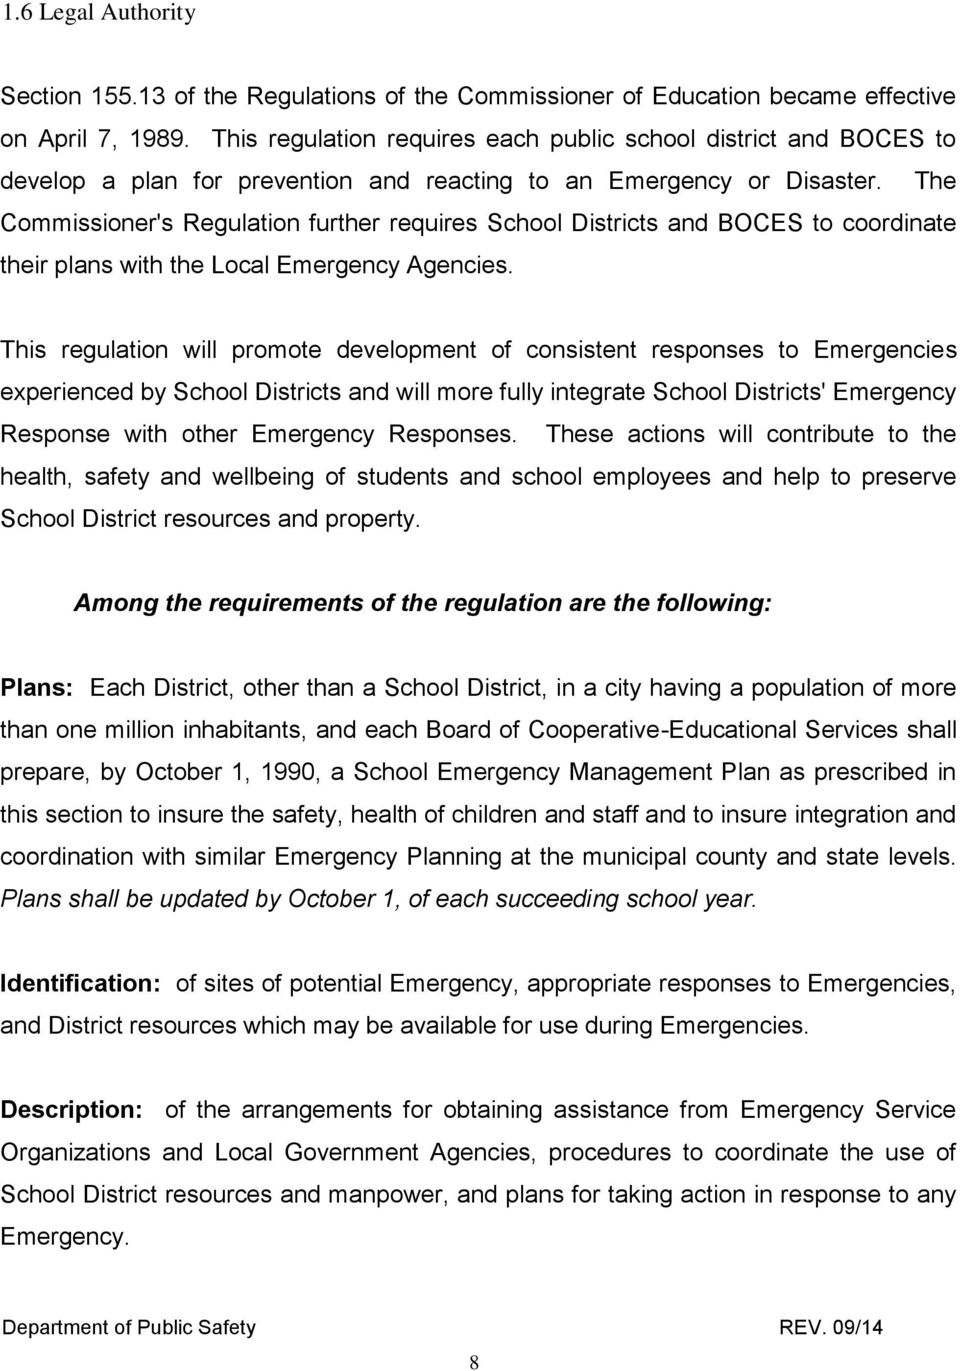 The Commissioner's Regulation further requires School Districts and BOCES to coordinate their plans with the Local Emergency Agencies.